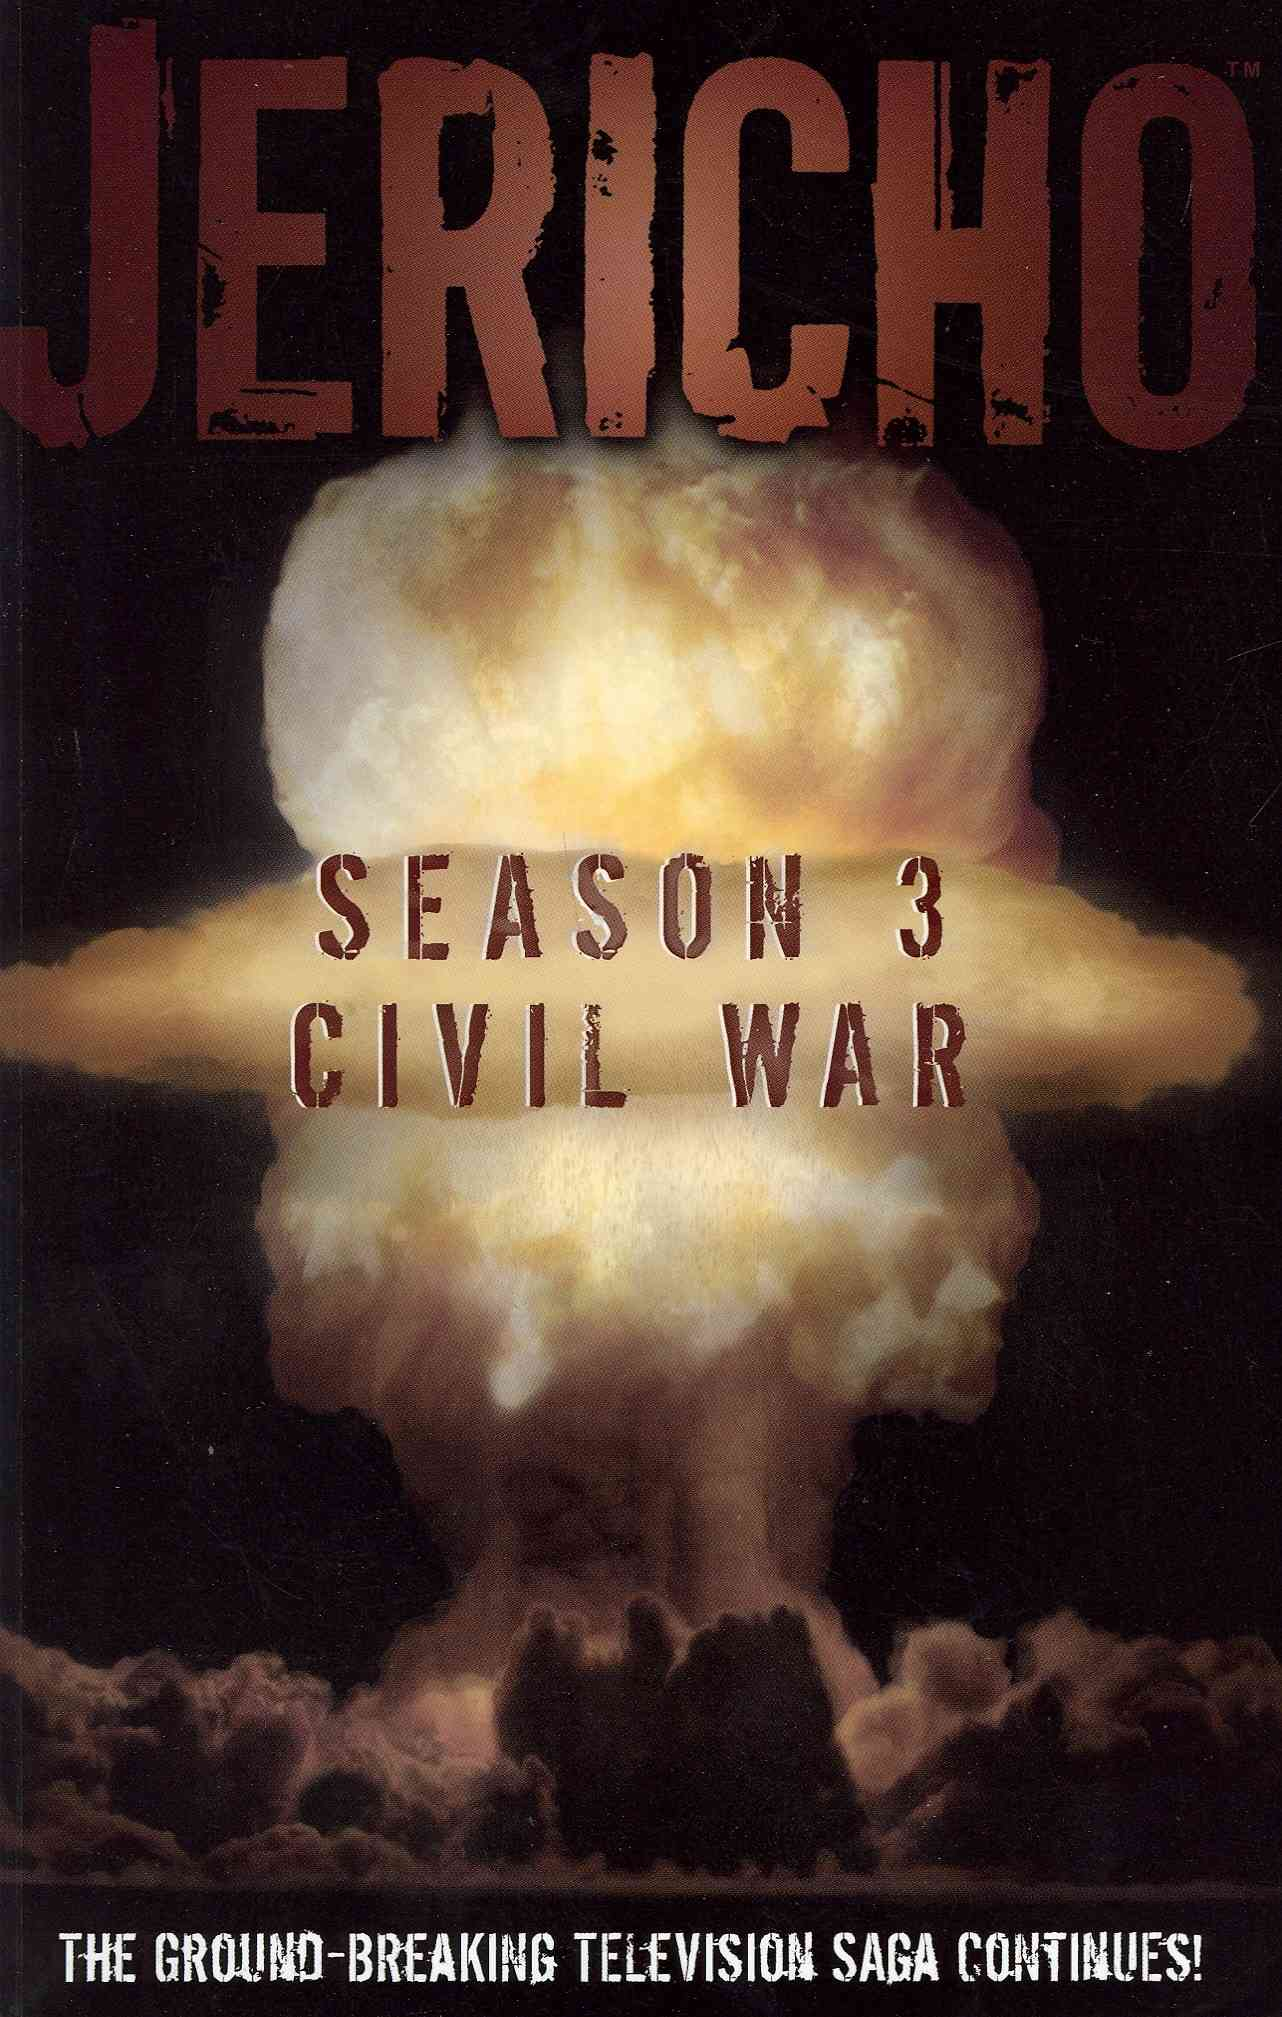 Jericho Season 3: Civil War (Paperback)